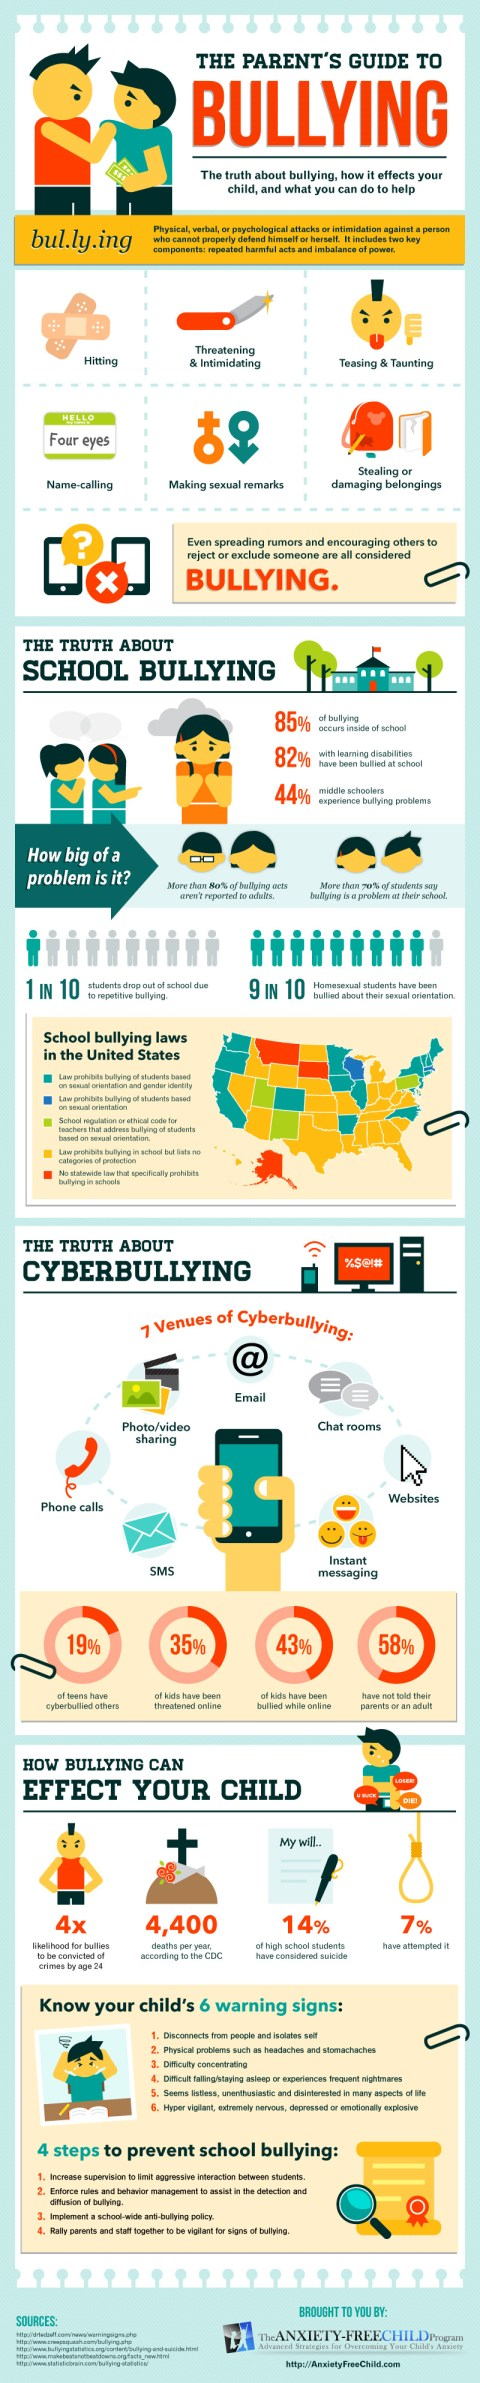 Teen Bullying and Cyberbulling Guide